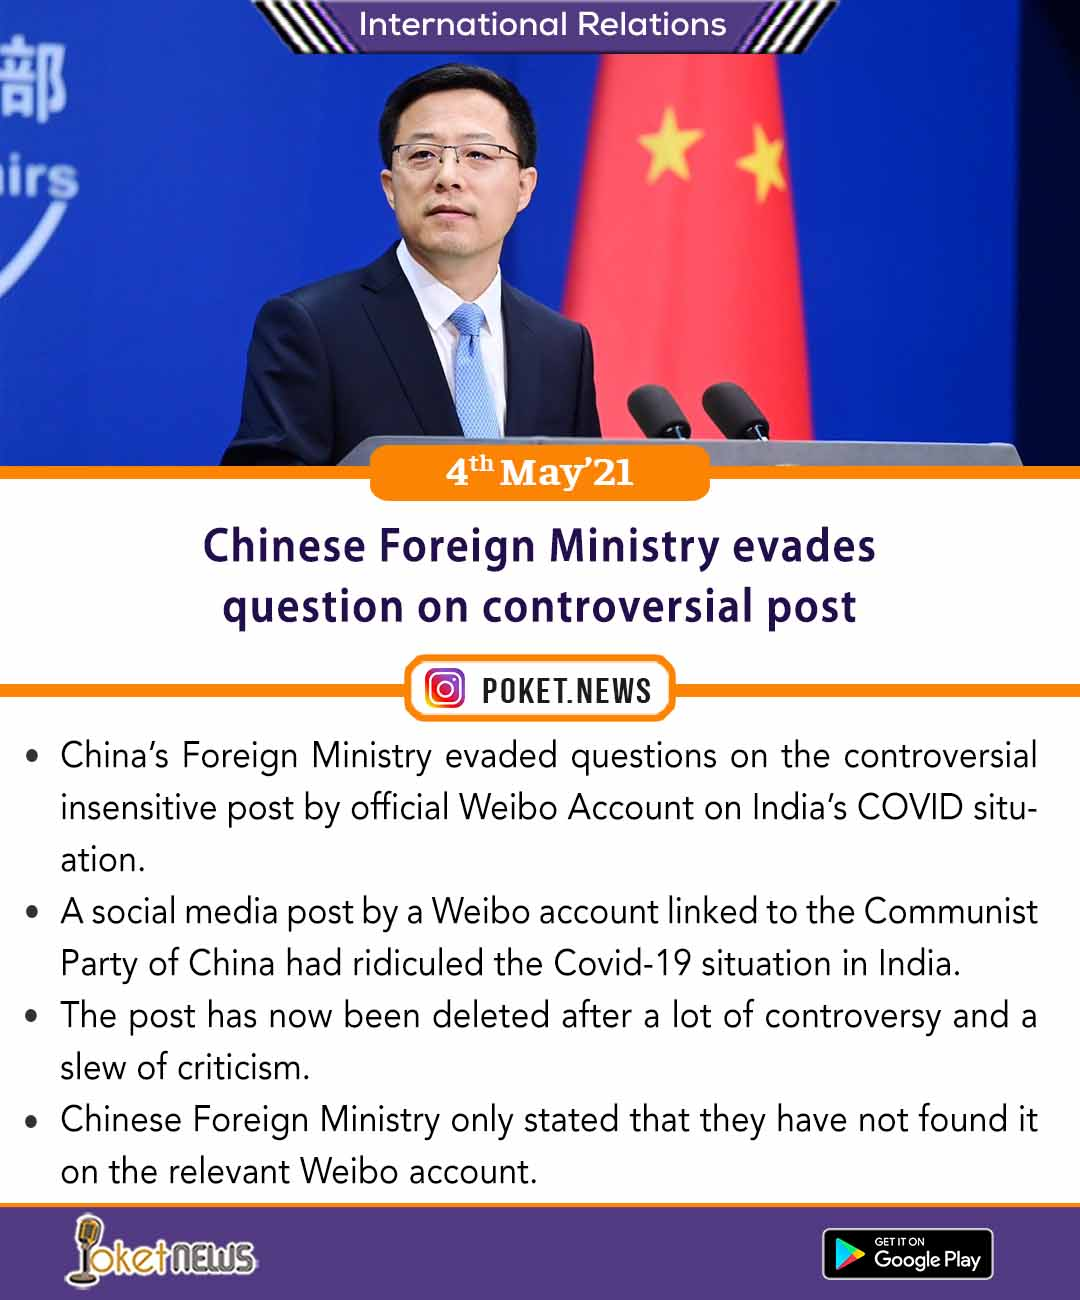 Chinese Foreign Ministry evades question on controversial post